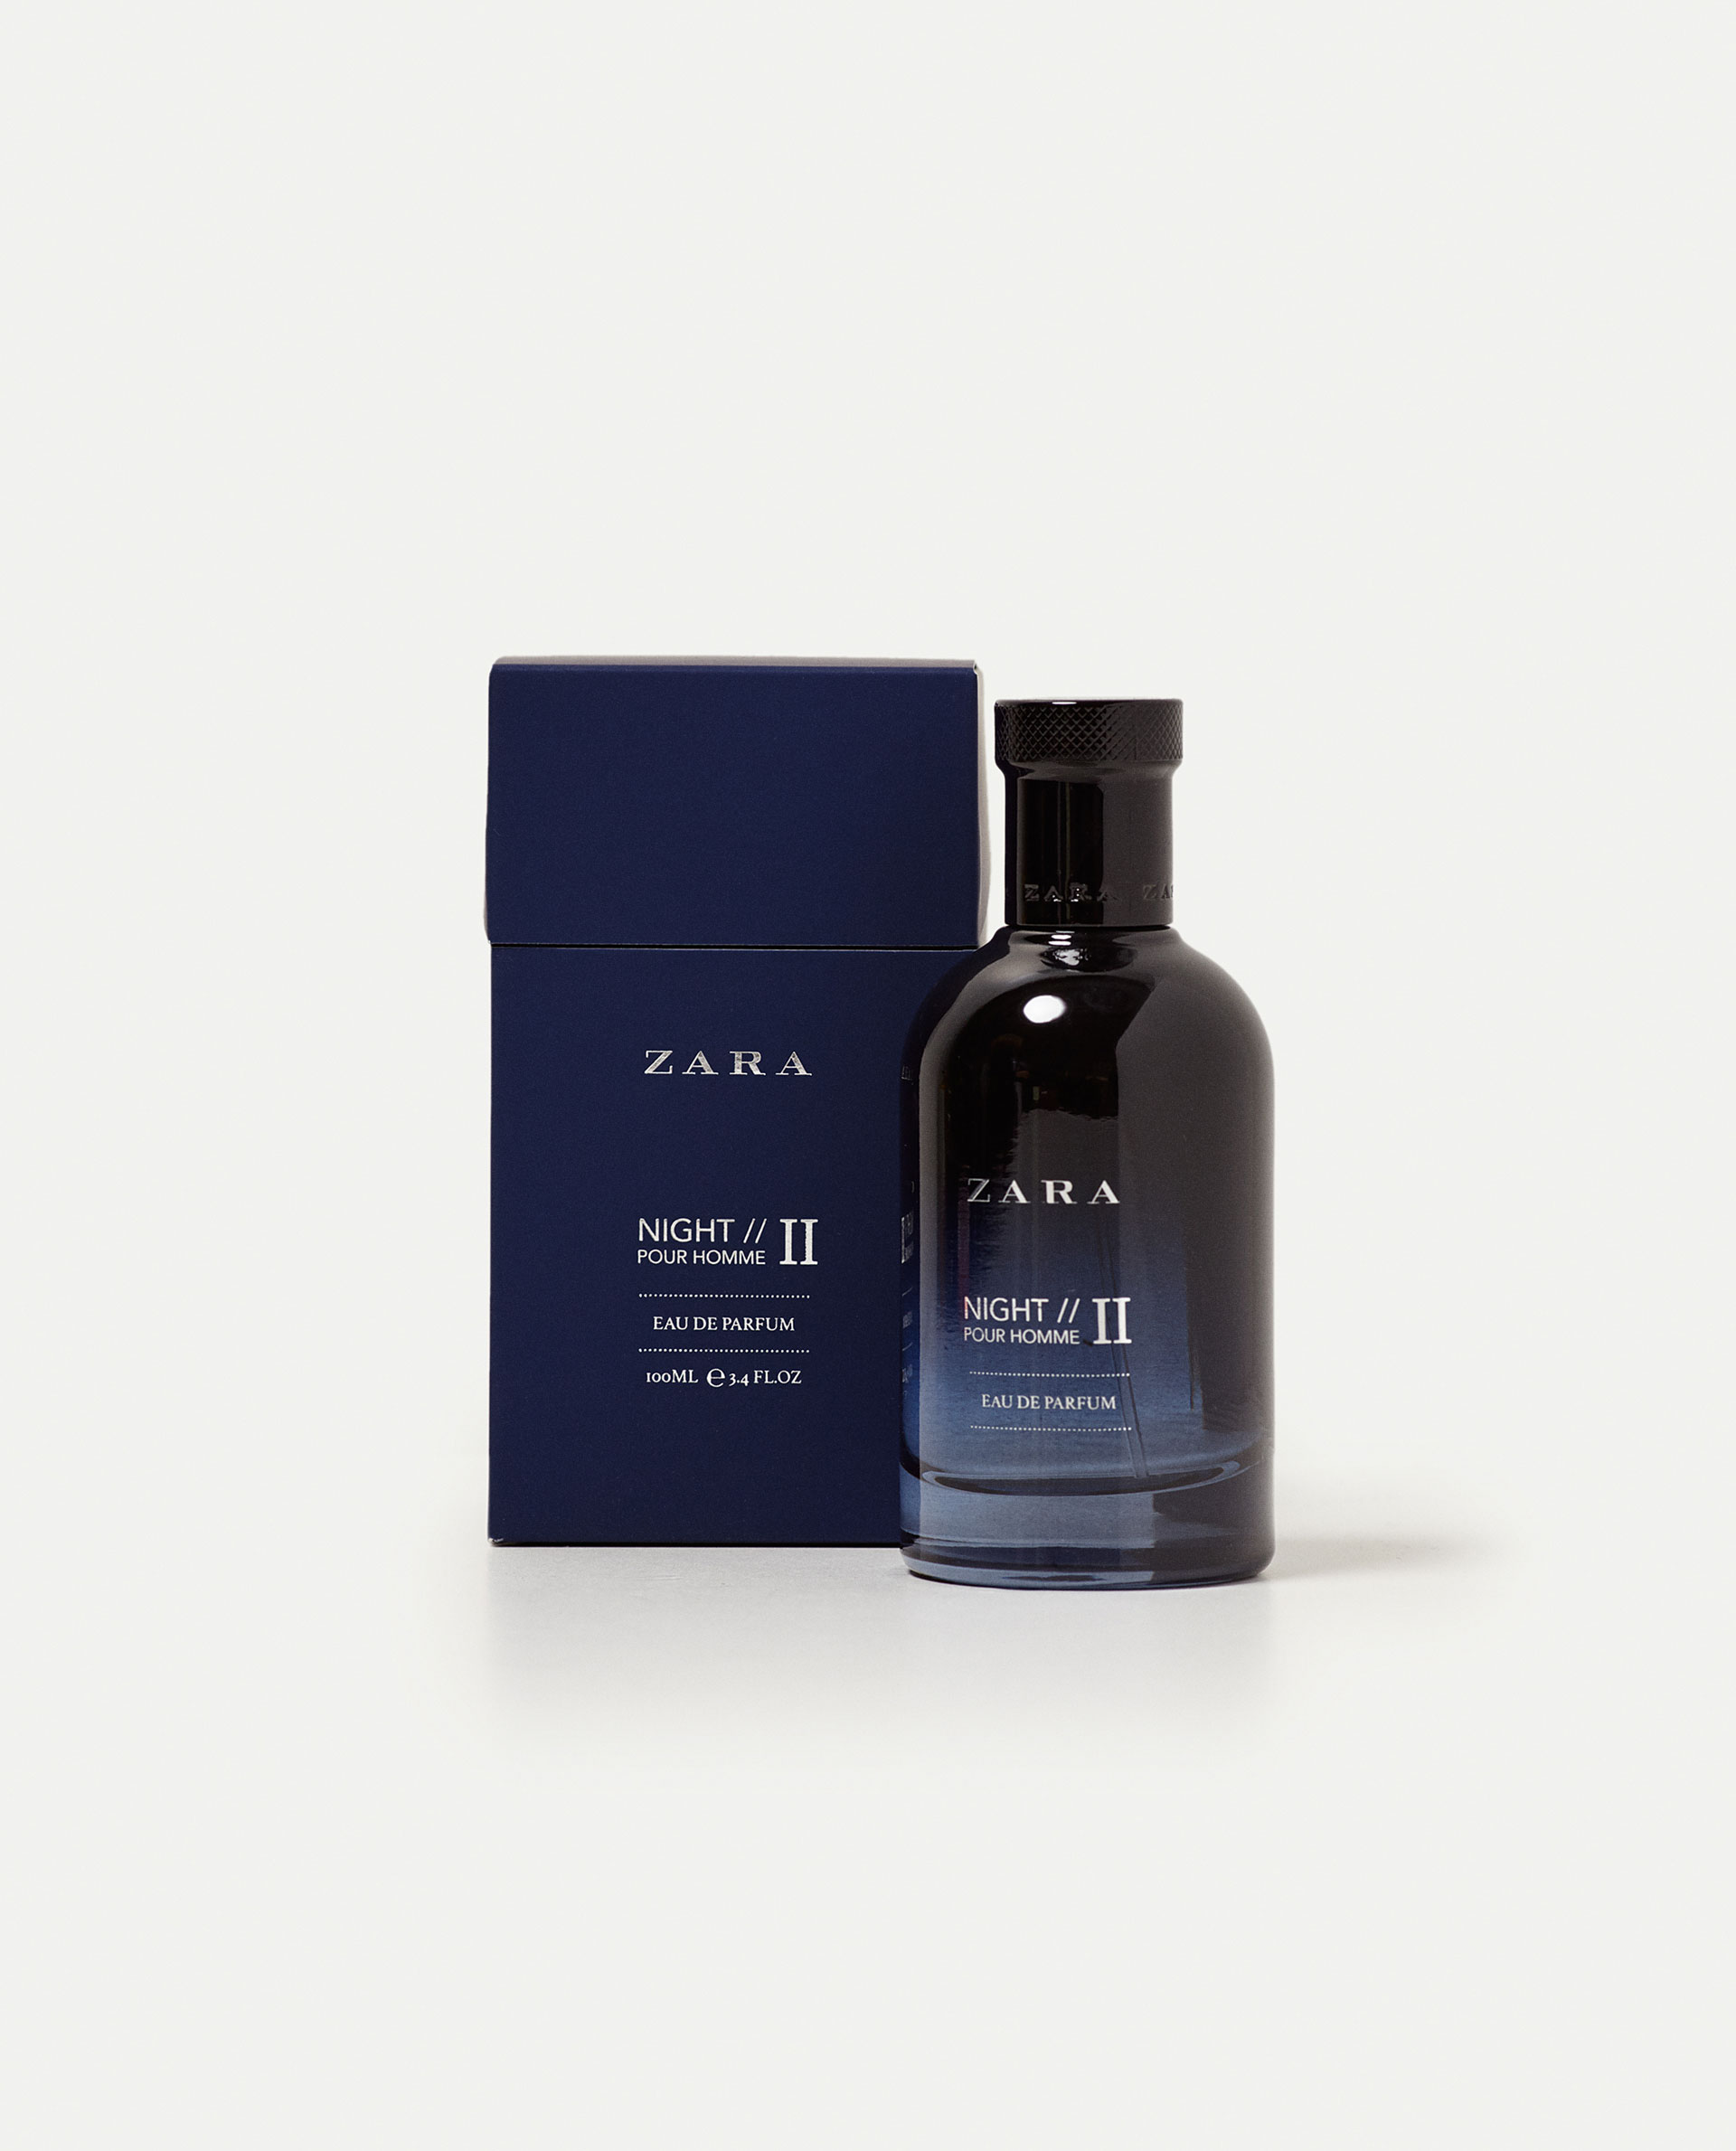 Zara Night Pour Homme Ii Cologne A New Fragrance For Men 2017 Dunhill Desire Silver M Edt 100 Ml